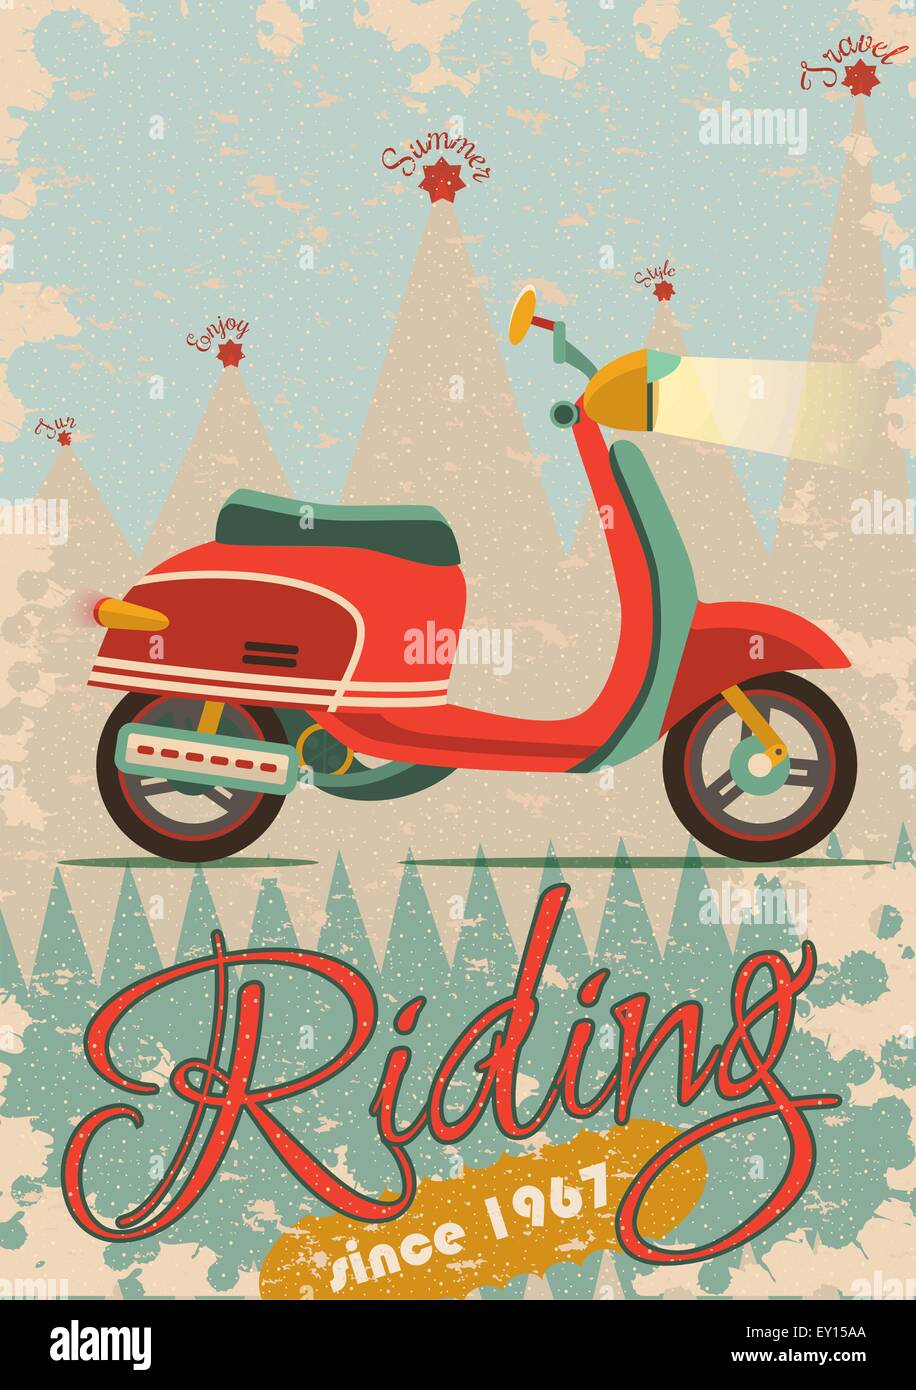 Poster design sample - Retro Poster Design With Vintage Scooter Illustration Sample Text Banner And Grunge Texture